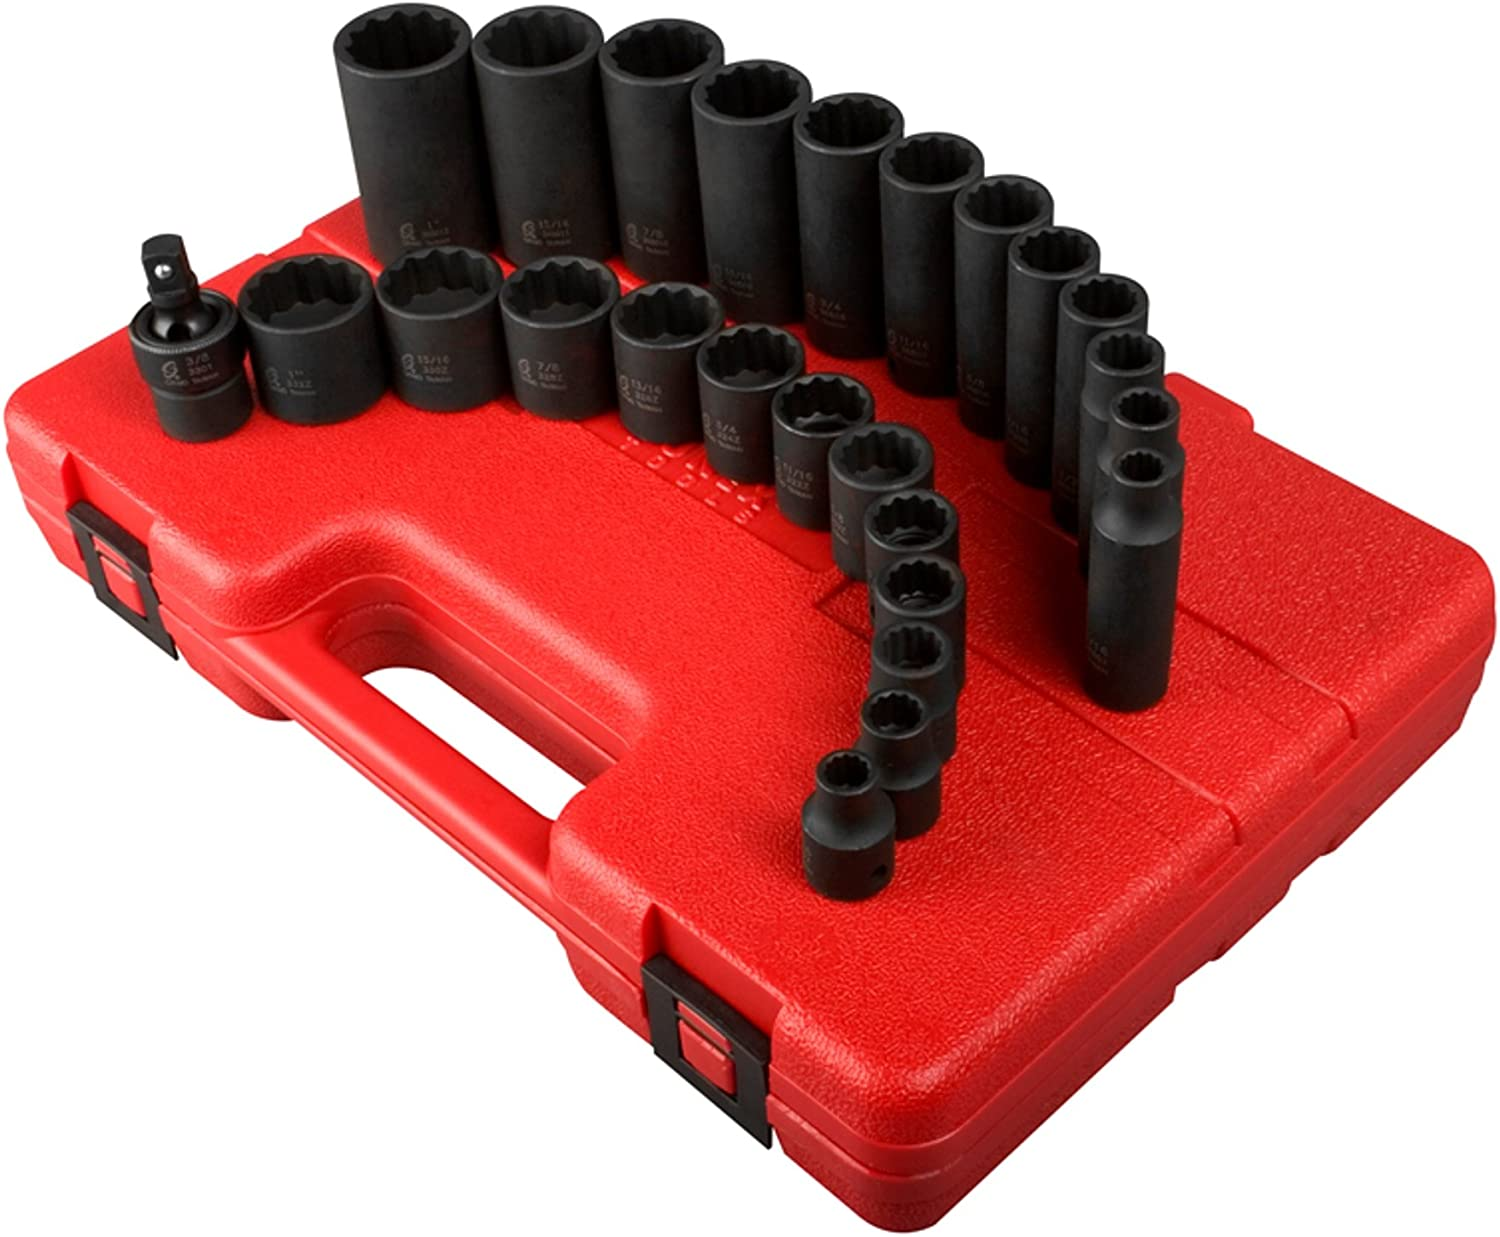 Sunex 3326 3 8-Inch Drive Outstanding 12-Point SAE 25-Pie New York Mall Socket Set Impact